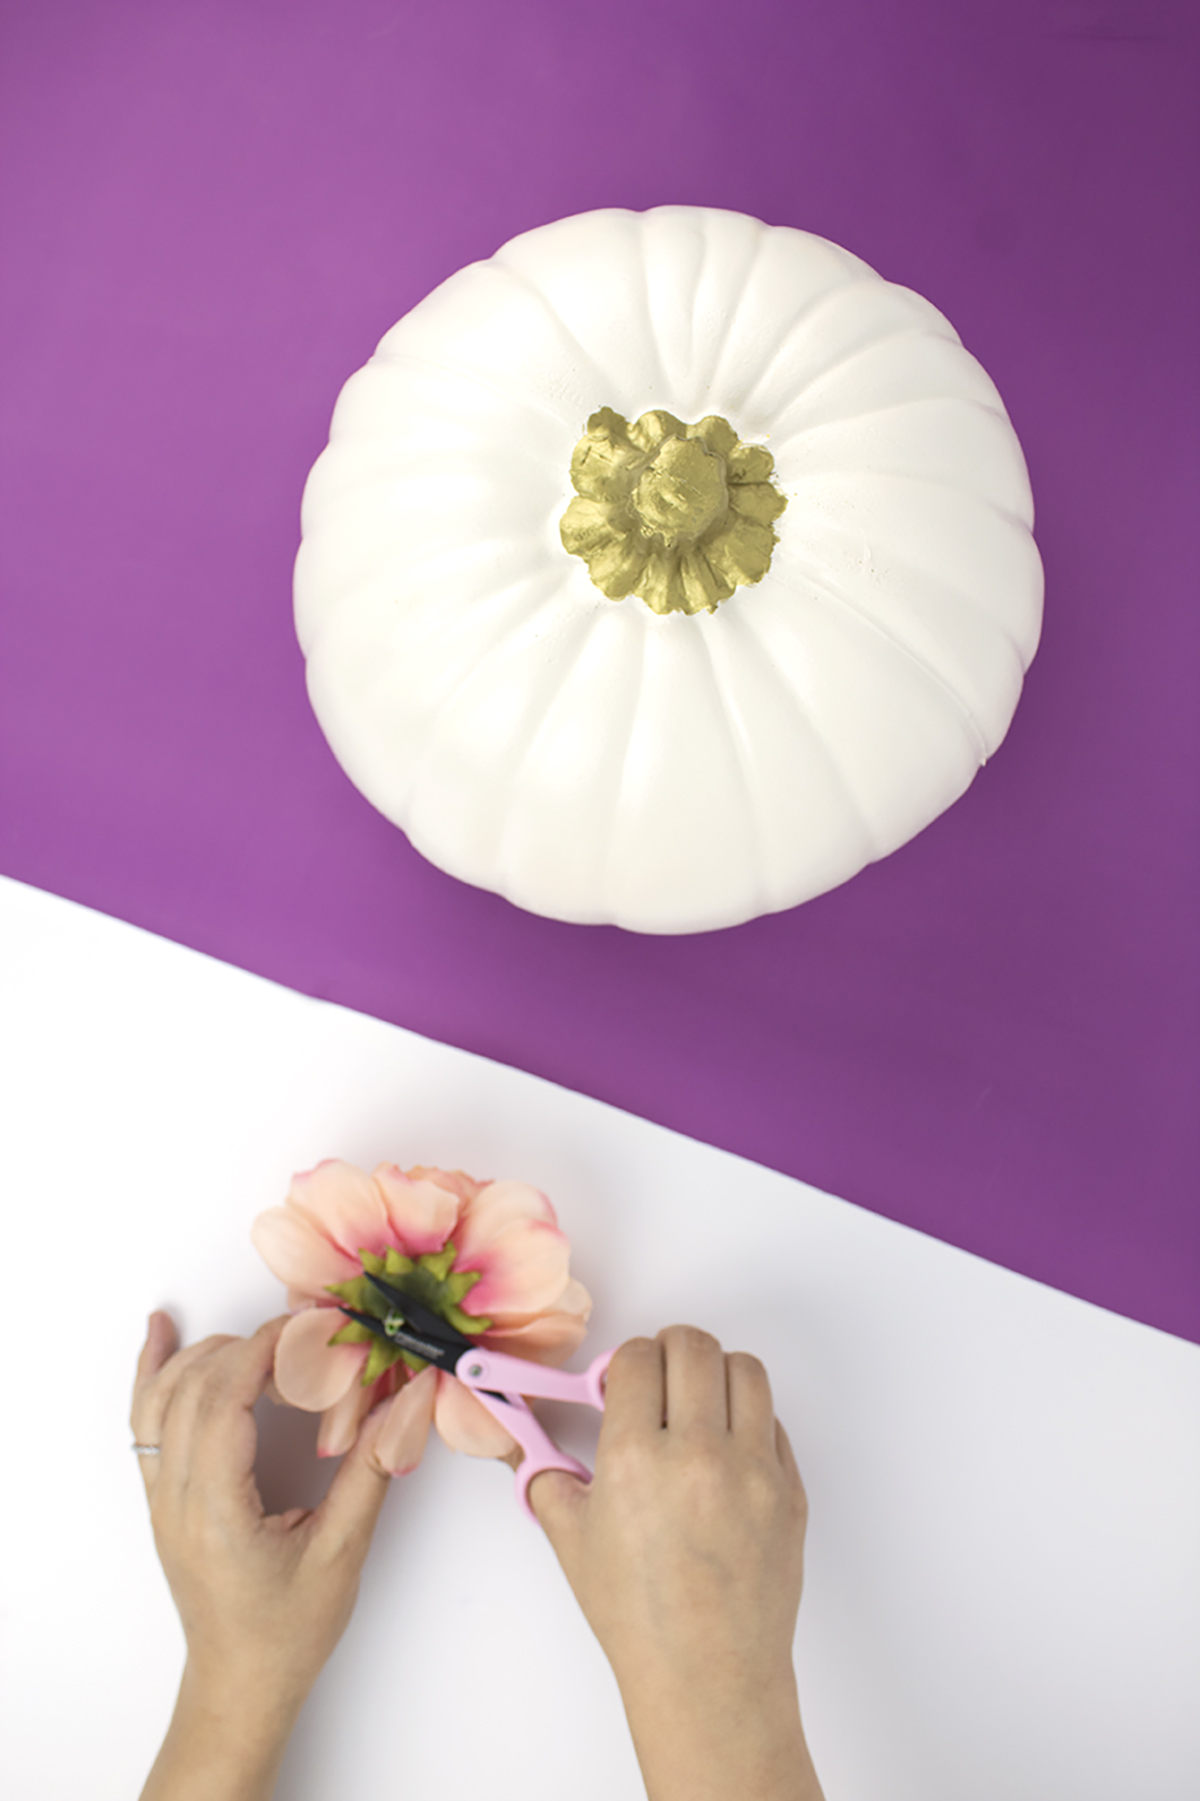 DIY Painted Pumpkins Step 2 cut the stem off your flower